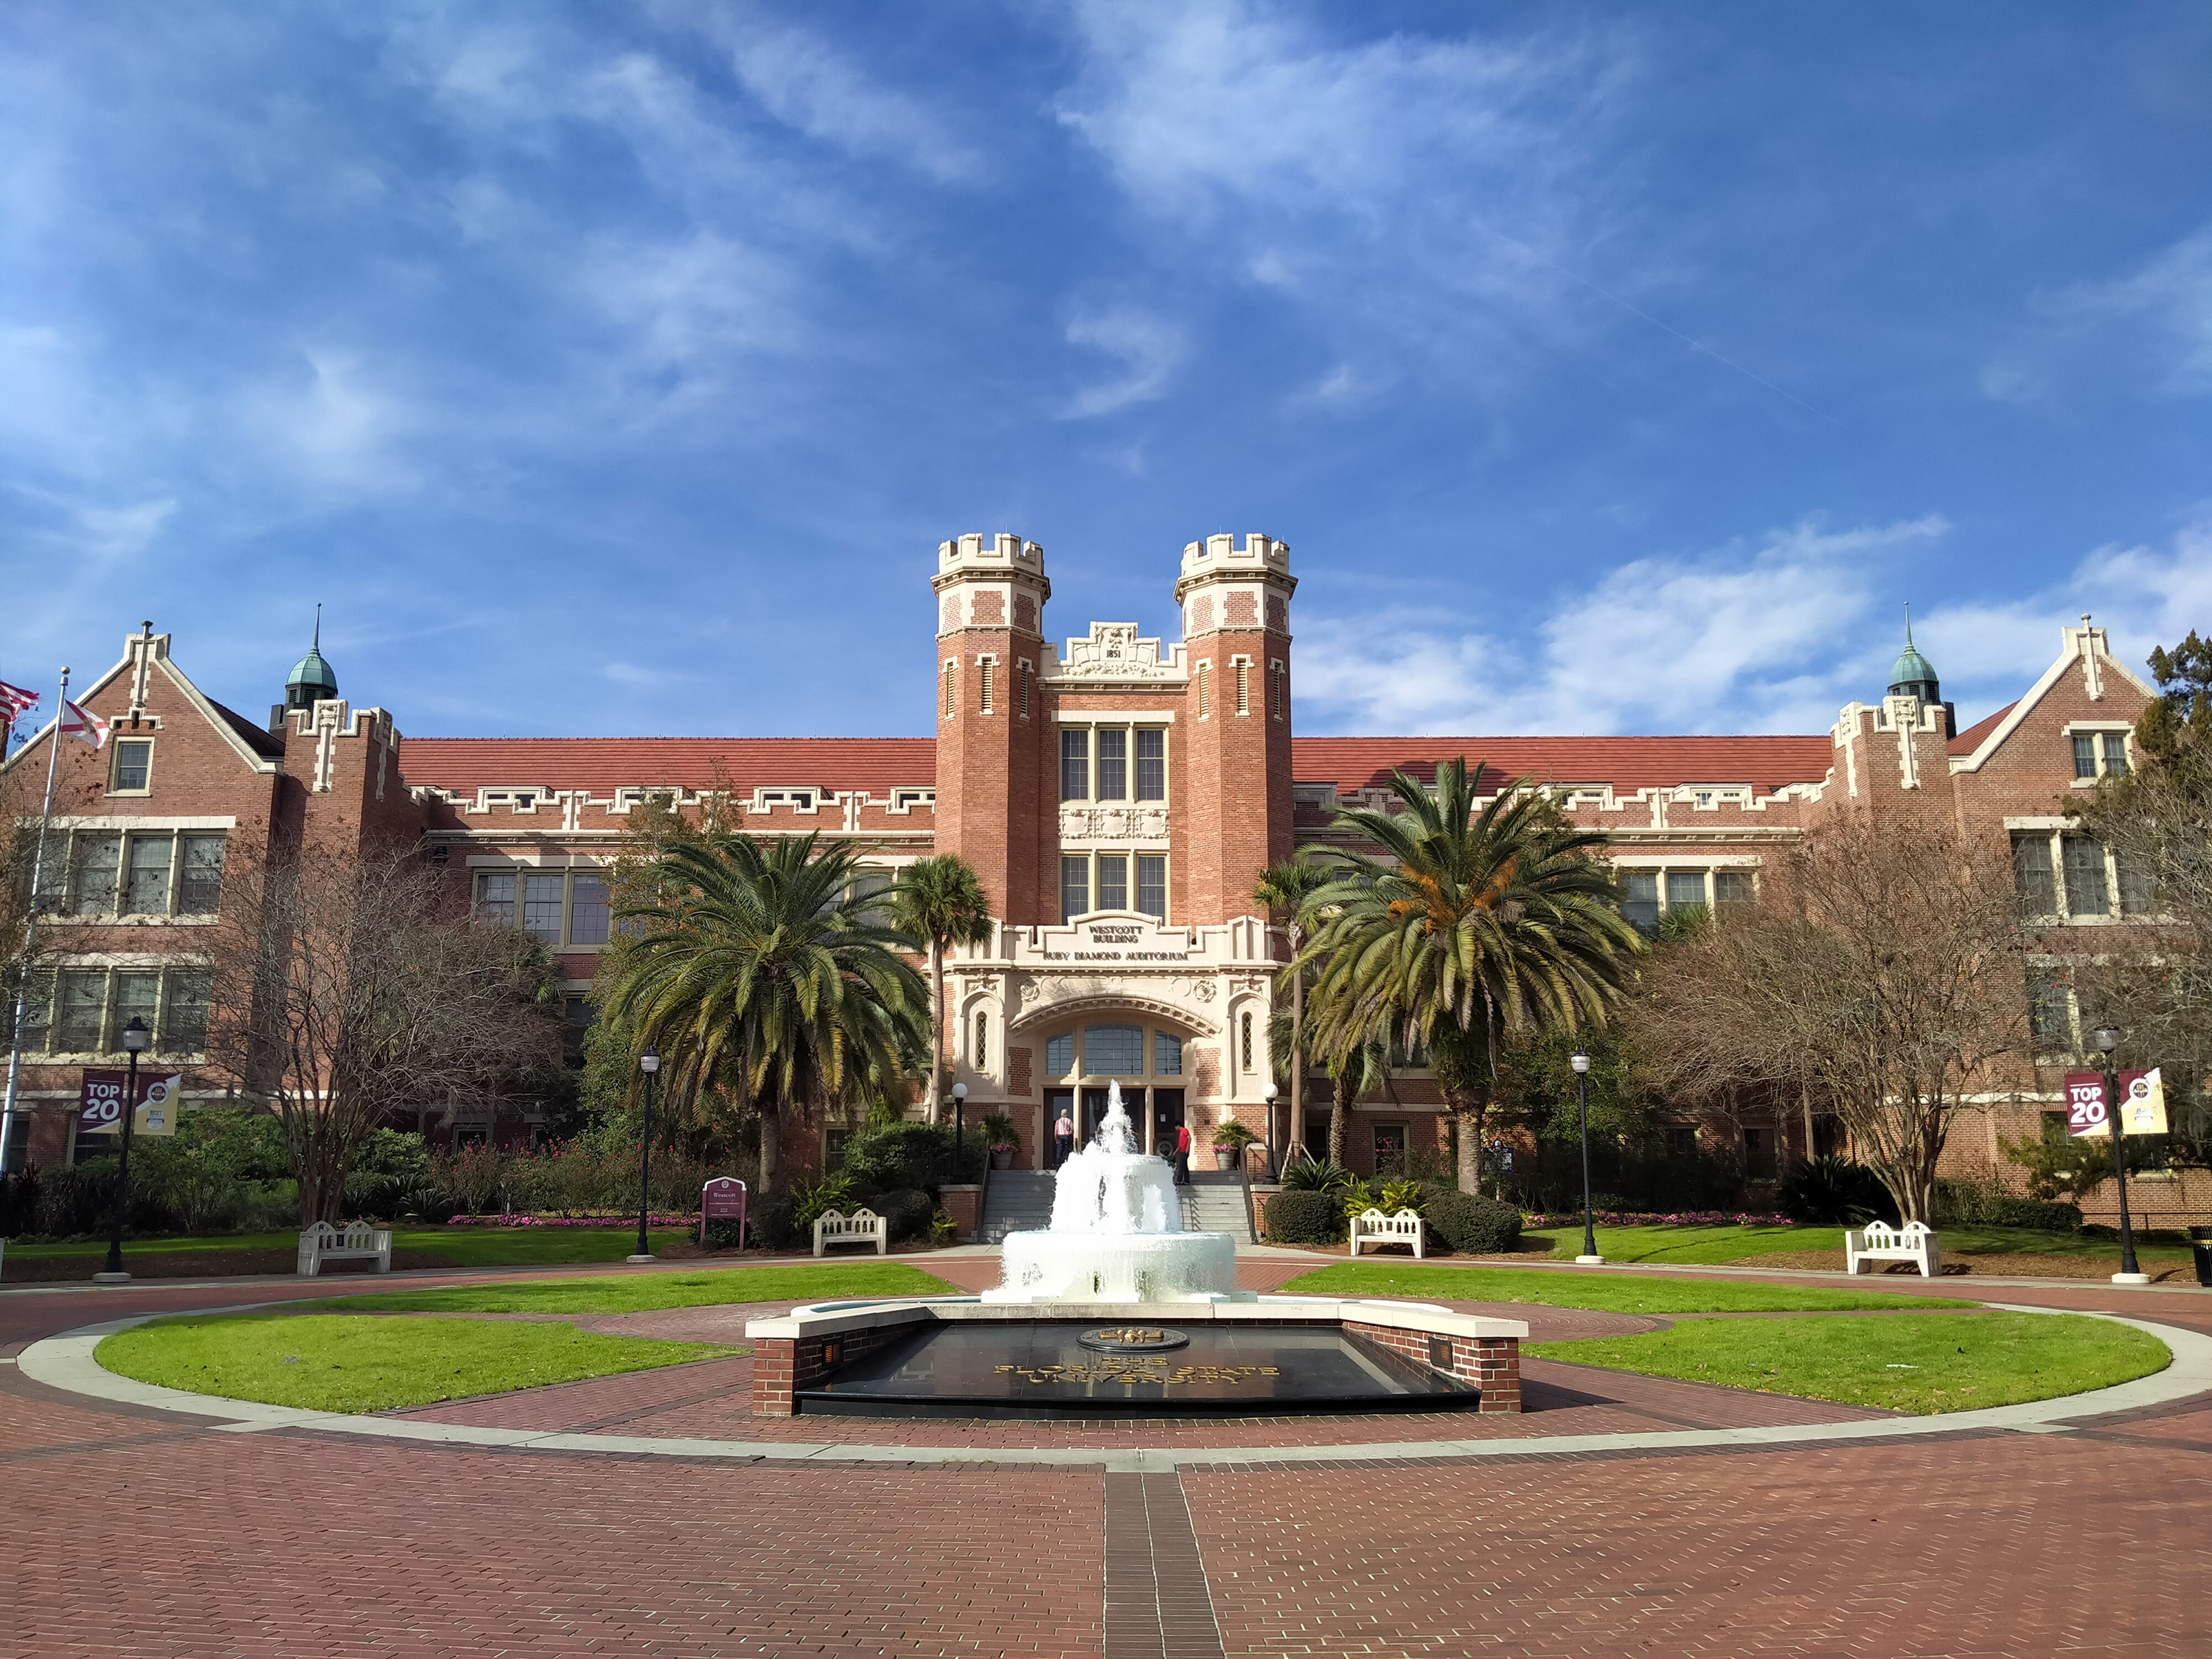 FSU football player accuses school of lying about Covid-19 safety